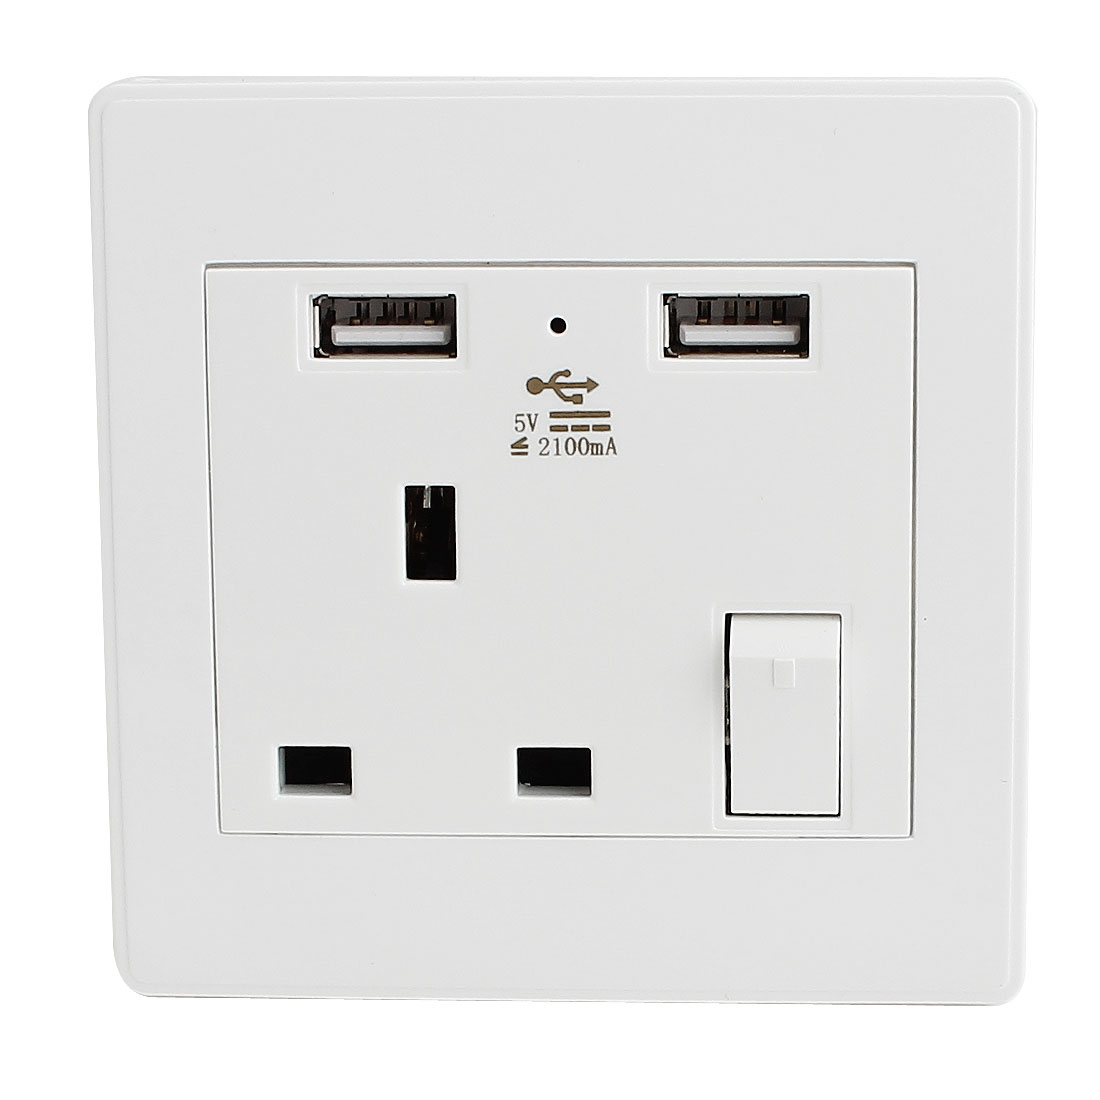 AC 110V-250V UK Socket 2 USB DC 5V 2100mA Charger Charging Power Switch Wall Outlet